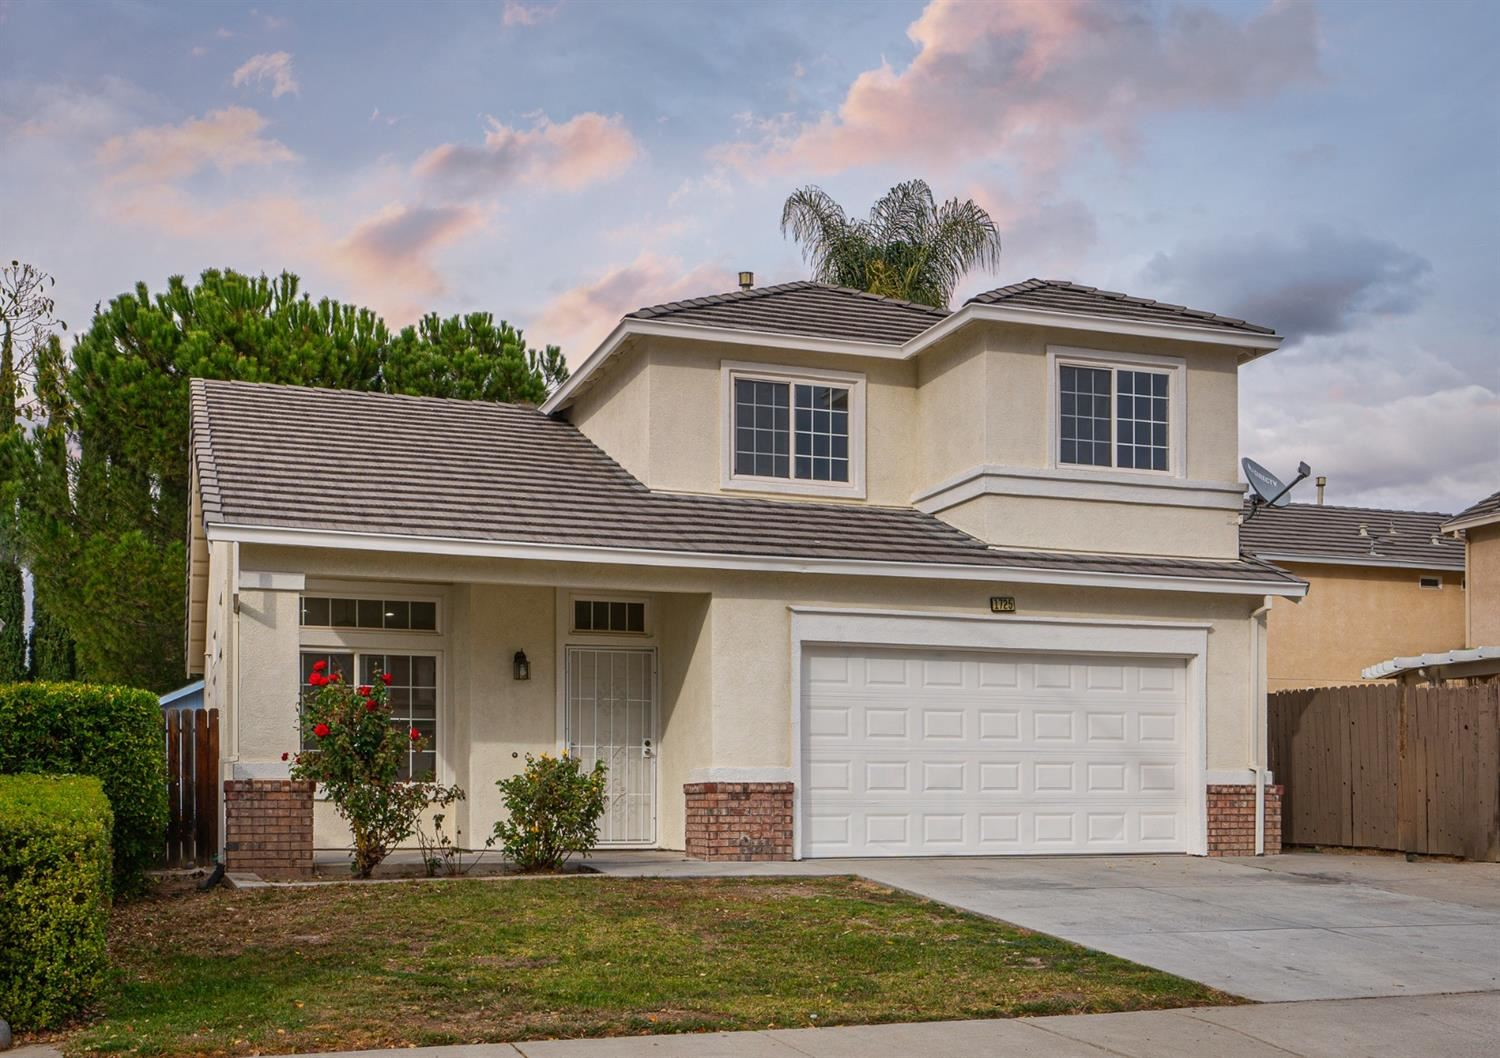 Photo of 1725 COUNTRYWOOD Lane, Tracy, CA 95376 (MLS # 221137464)